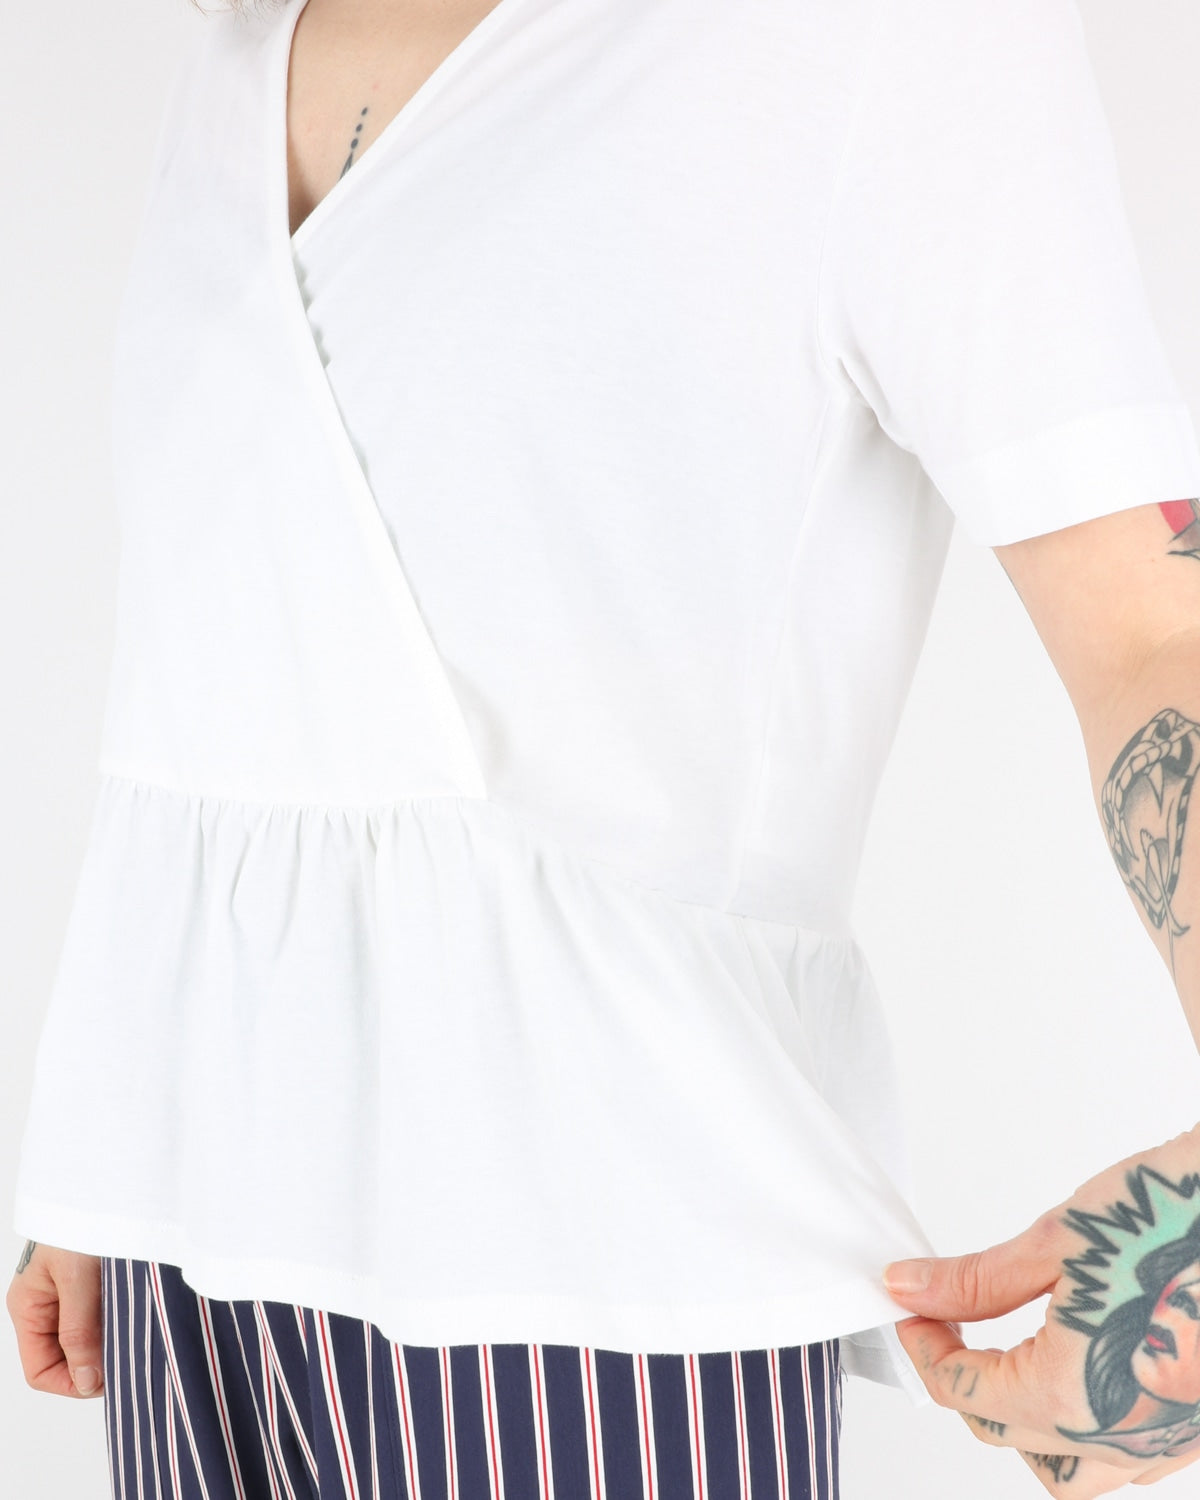 libertine libertine_grace top_white_2_3